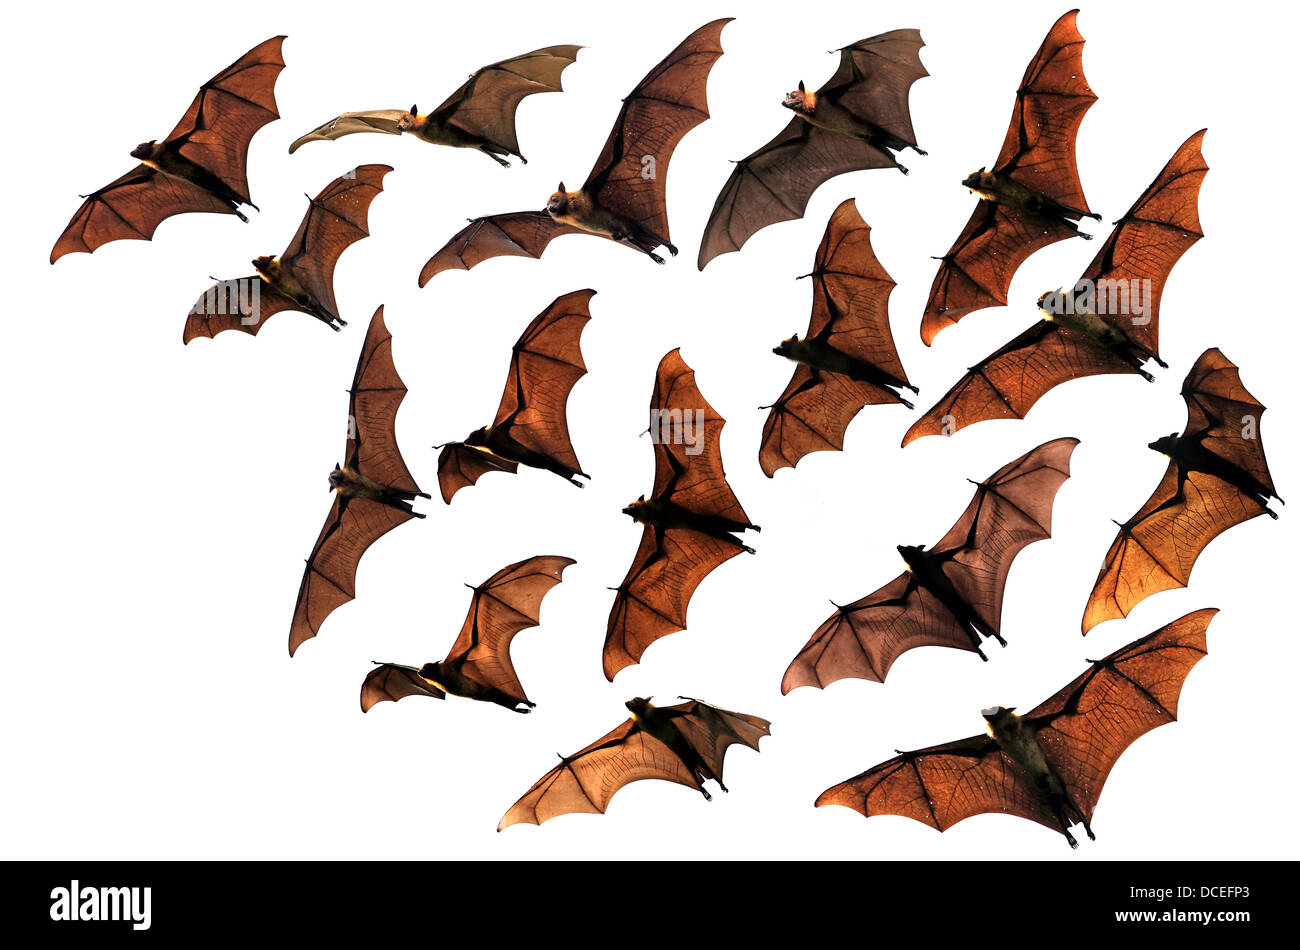 Fruit bats flying fox colony flying in sky - Stock Image